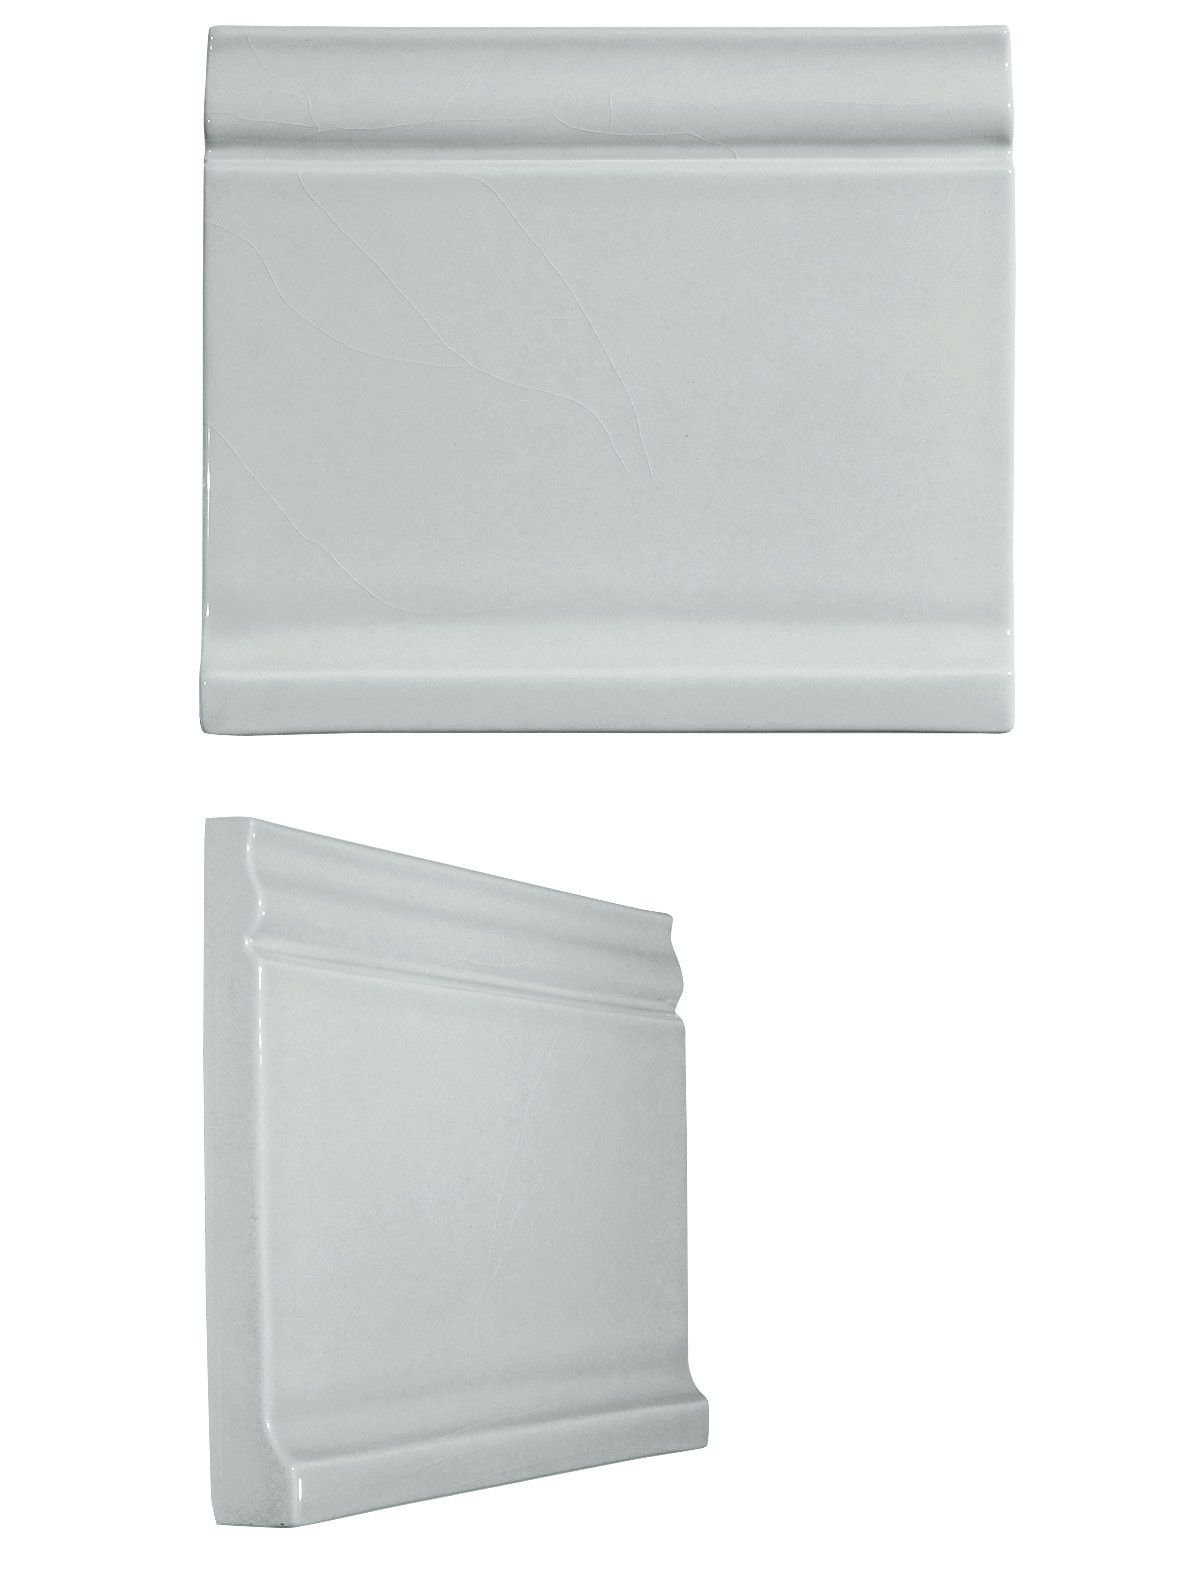 Vermeere Ceramic Tile Molding Normandy Baseboard Complete Collection